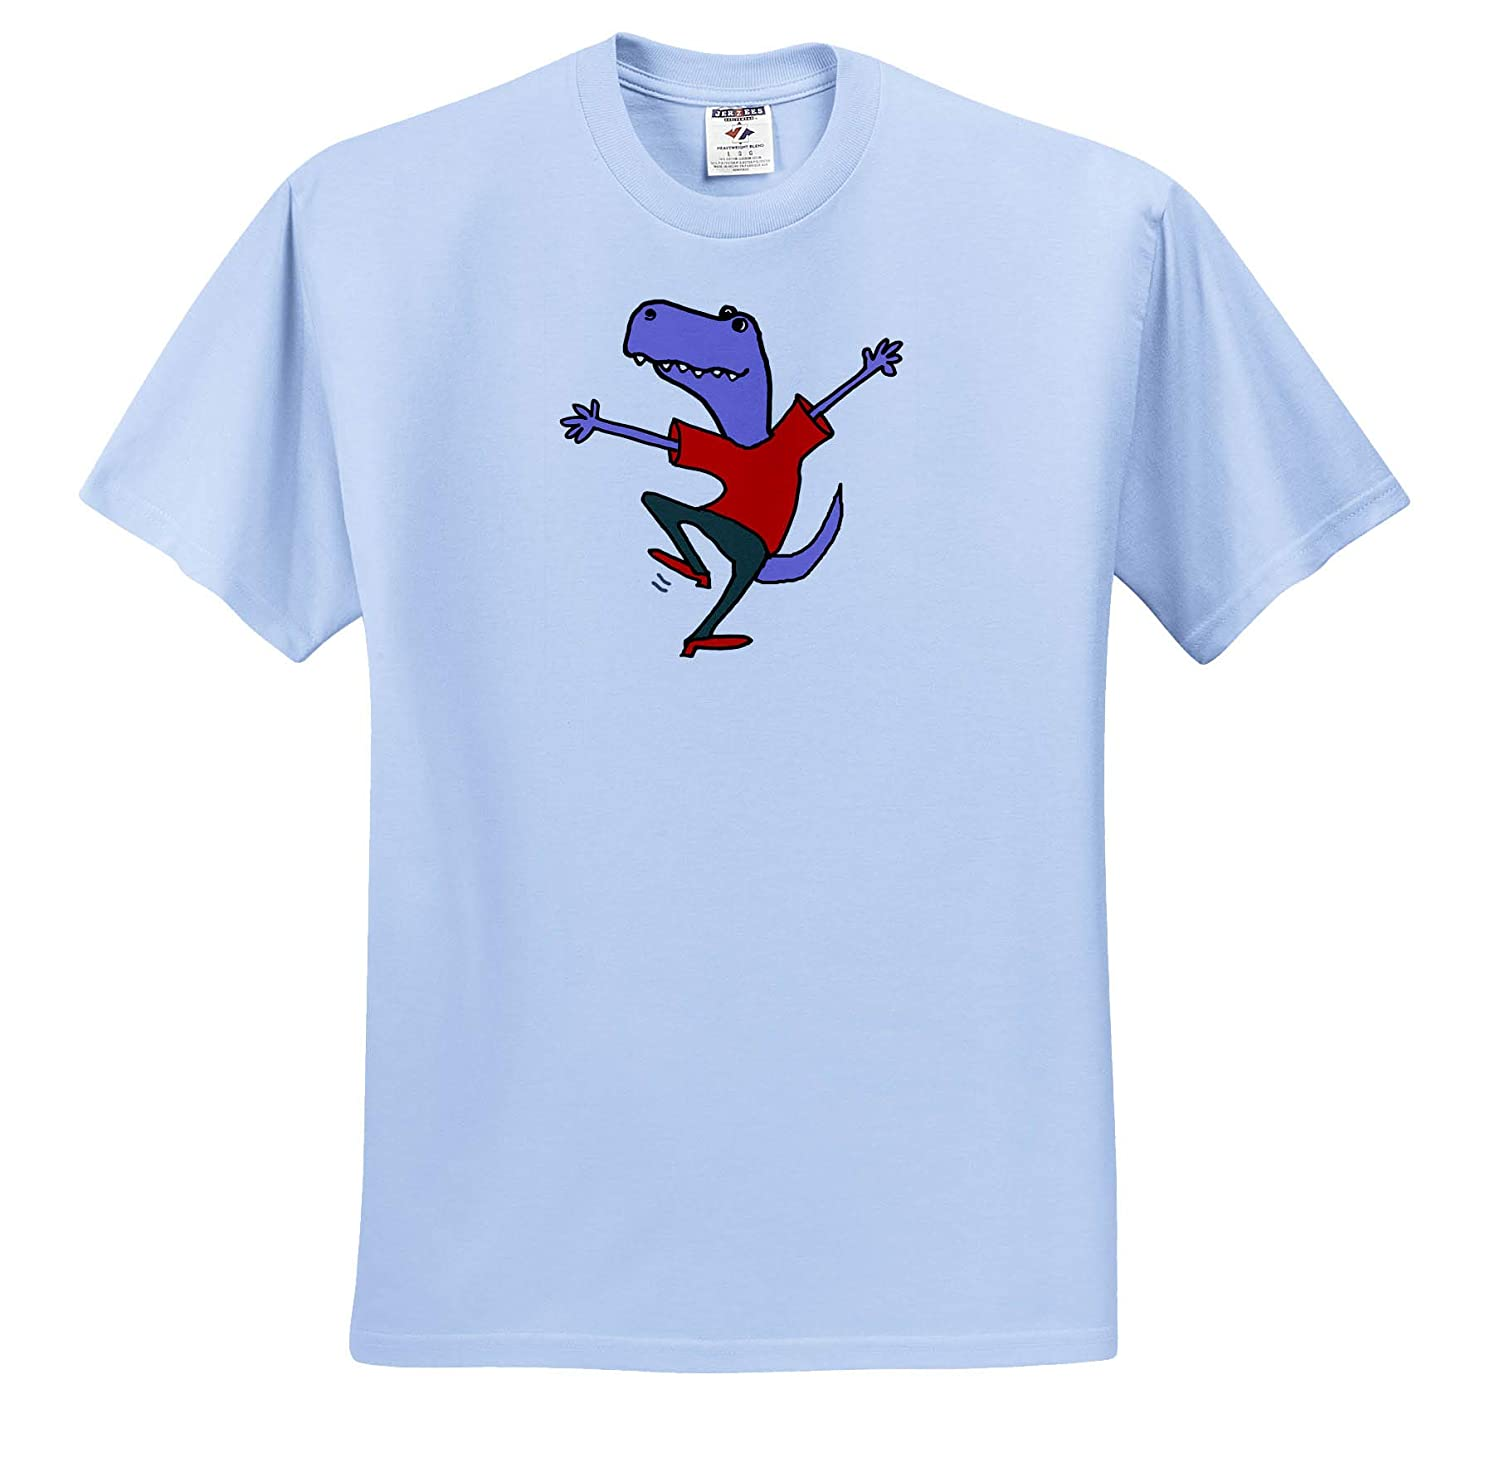 3dRose All Smiles Art ts/_319322 Funny Cute Happy Blue T-rex Dinosaur Dancing Cartoon Funny Adult T-Shirt XL